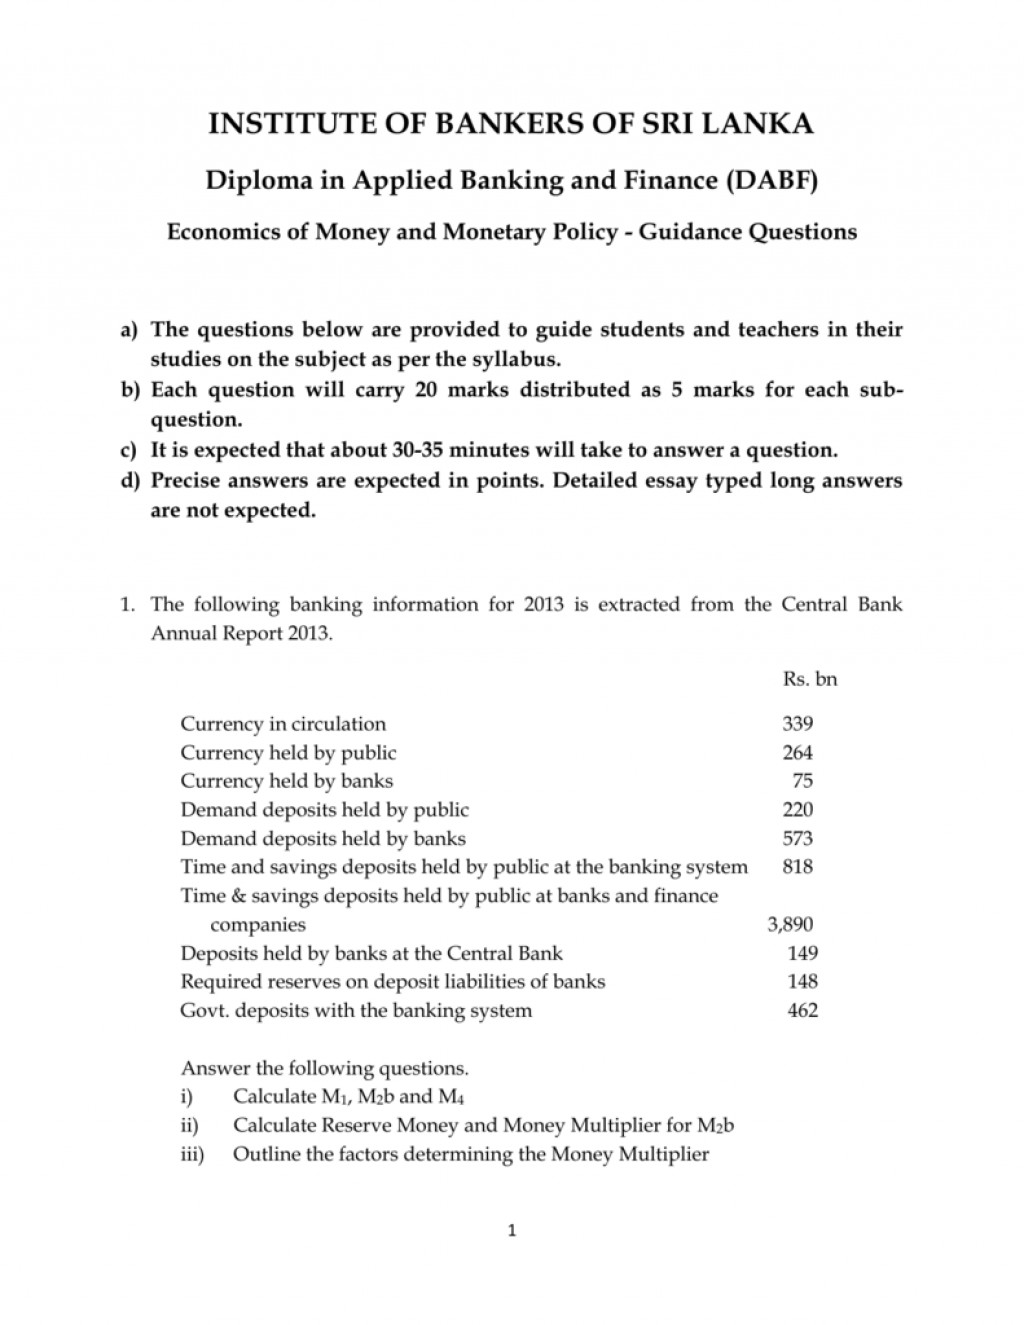 012 Research Paper In Economics Topics Essay Monetary Policy Australia Committee Of Stupendous Finance Business International Large